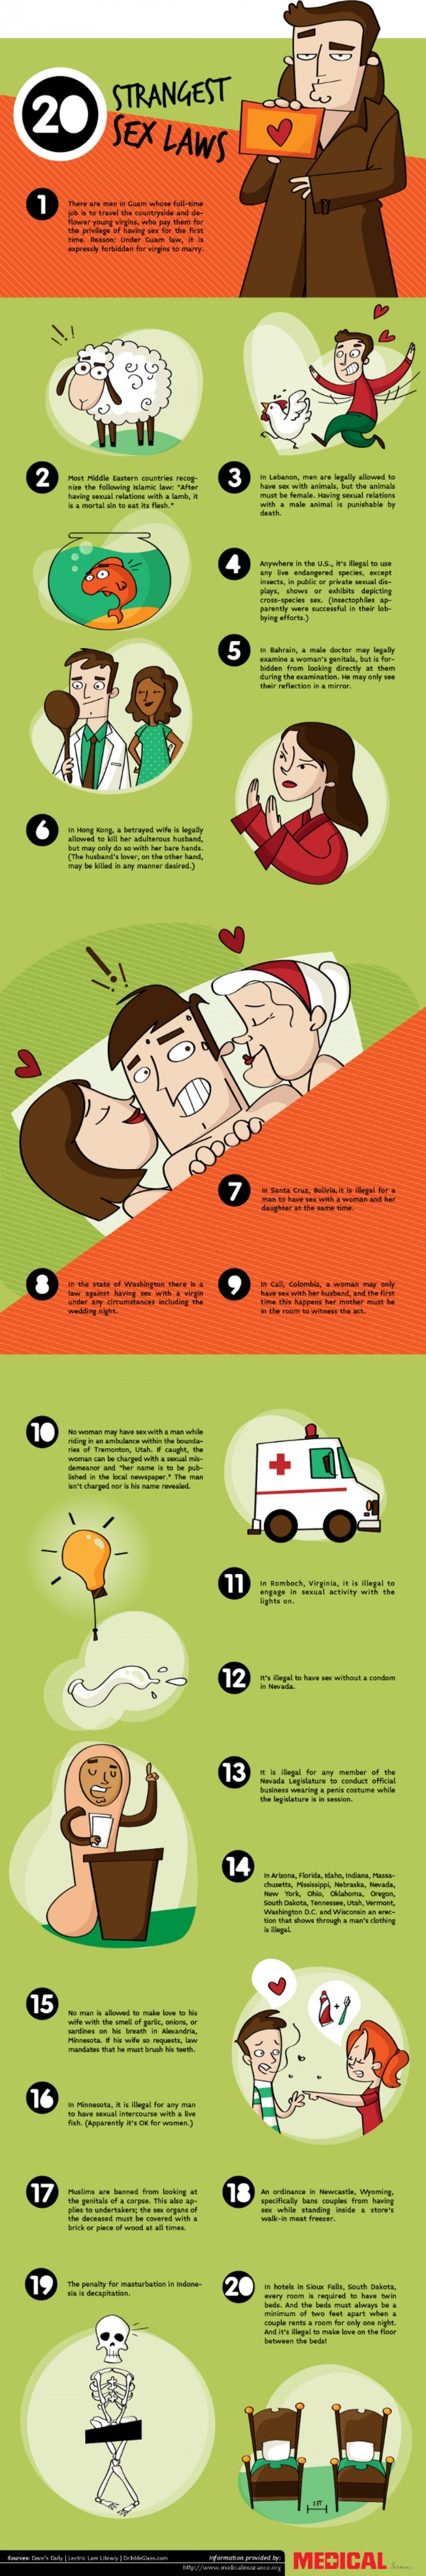 The World's Strangest Sex Laws Infographic